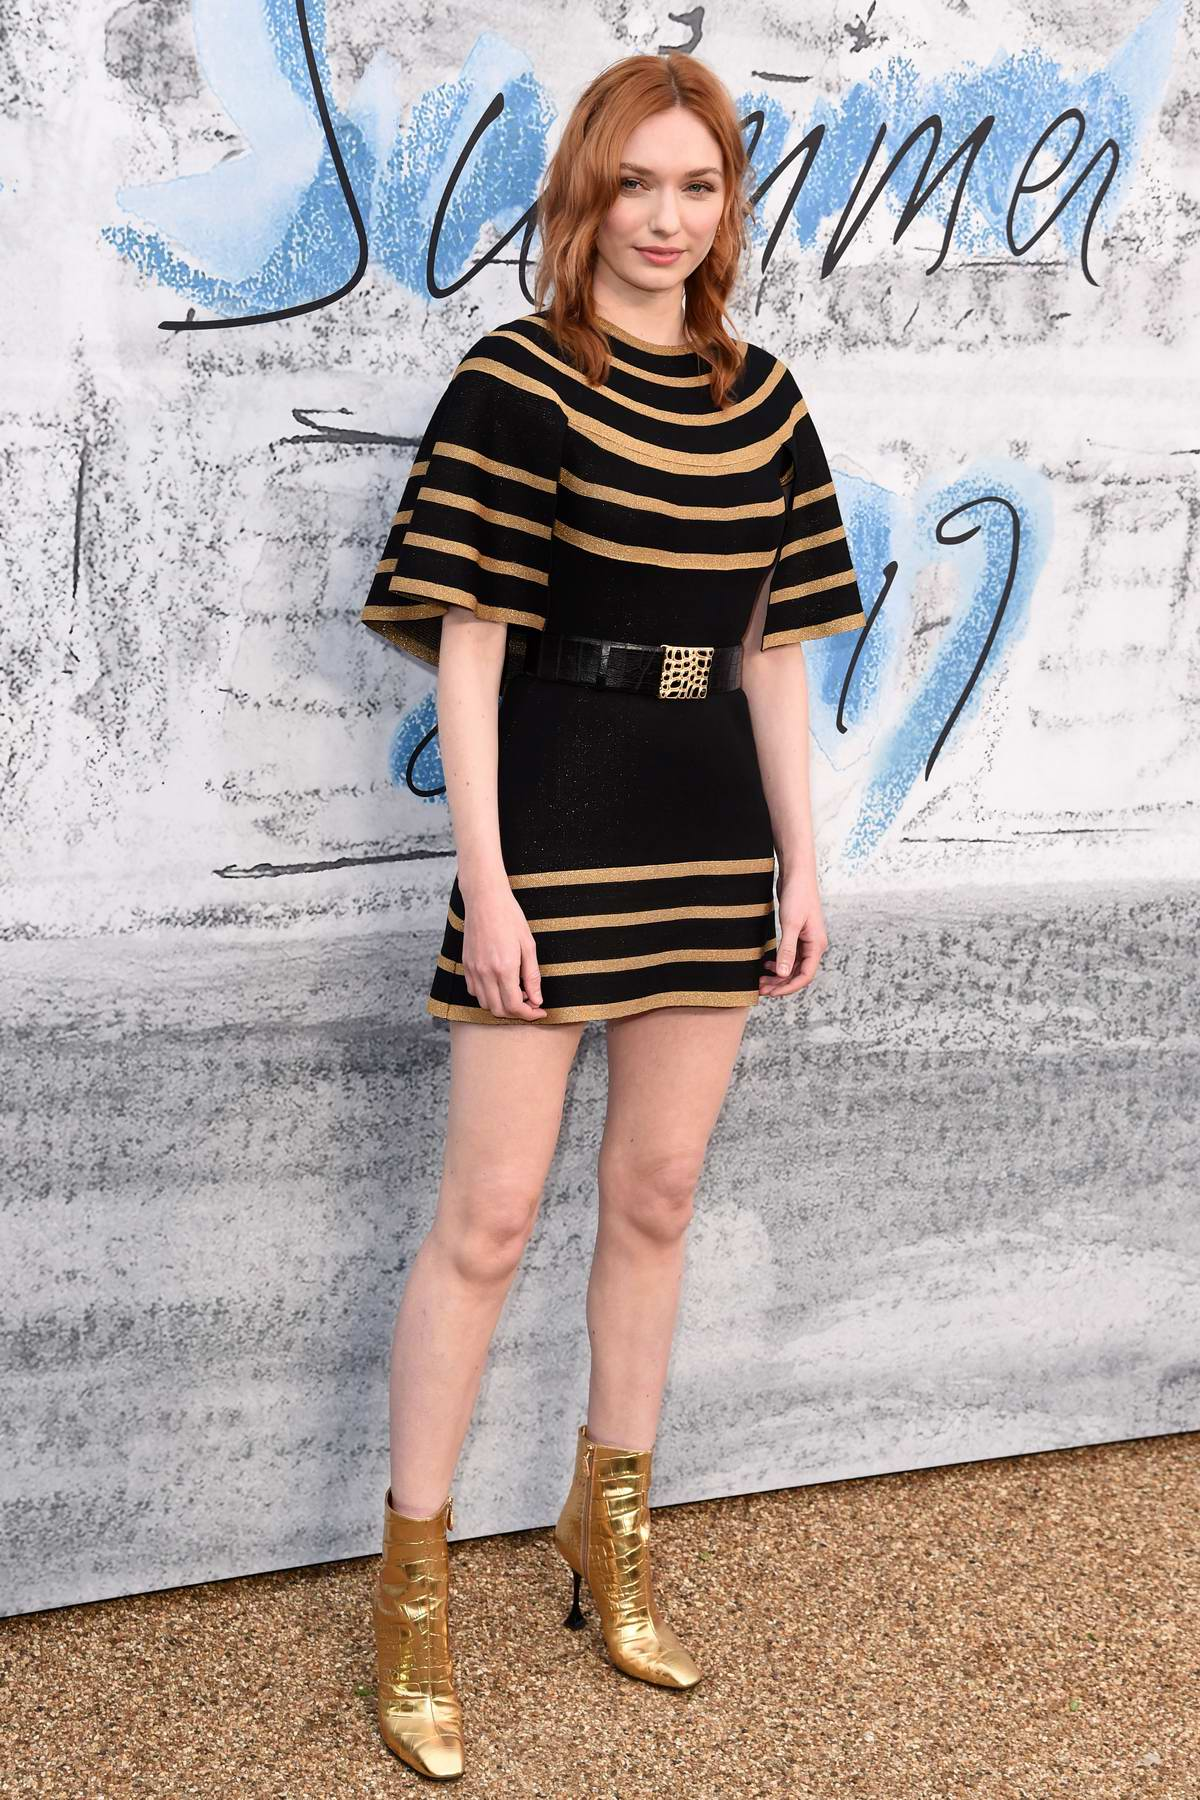 Eleanor Tomlinson attends The Summer Party 2019 at Serpentine Gallery at Kensington Gardens in London, UK